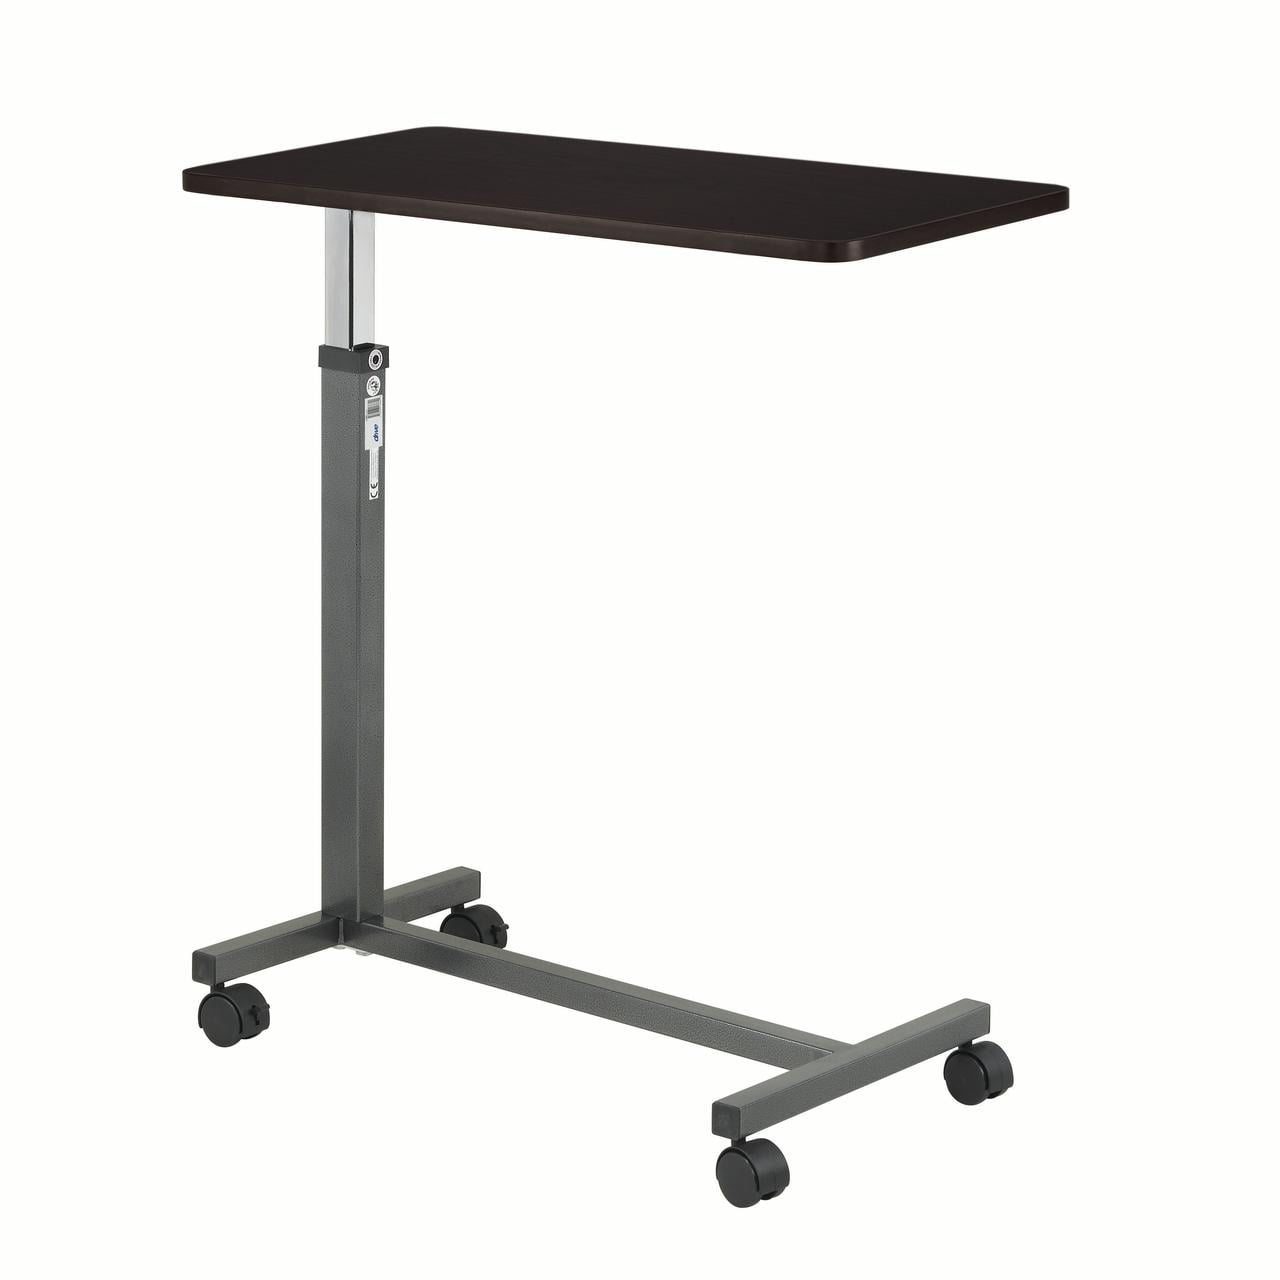 Transser Portable Laptop Rolling Cart Standing Table Portable Height Adjustable Bedside Mobile Laptop Computer Stand Desk with Removable Wheels Shipping From NJ. White